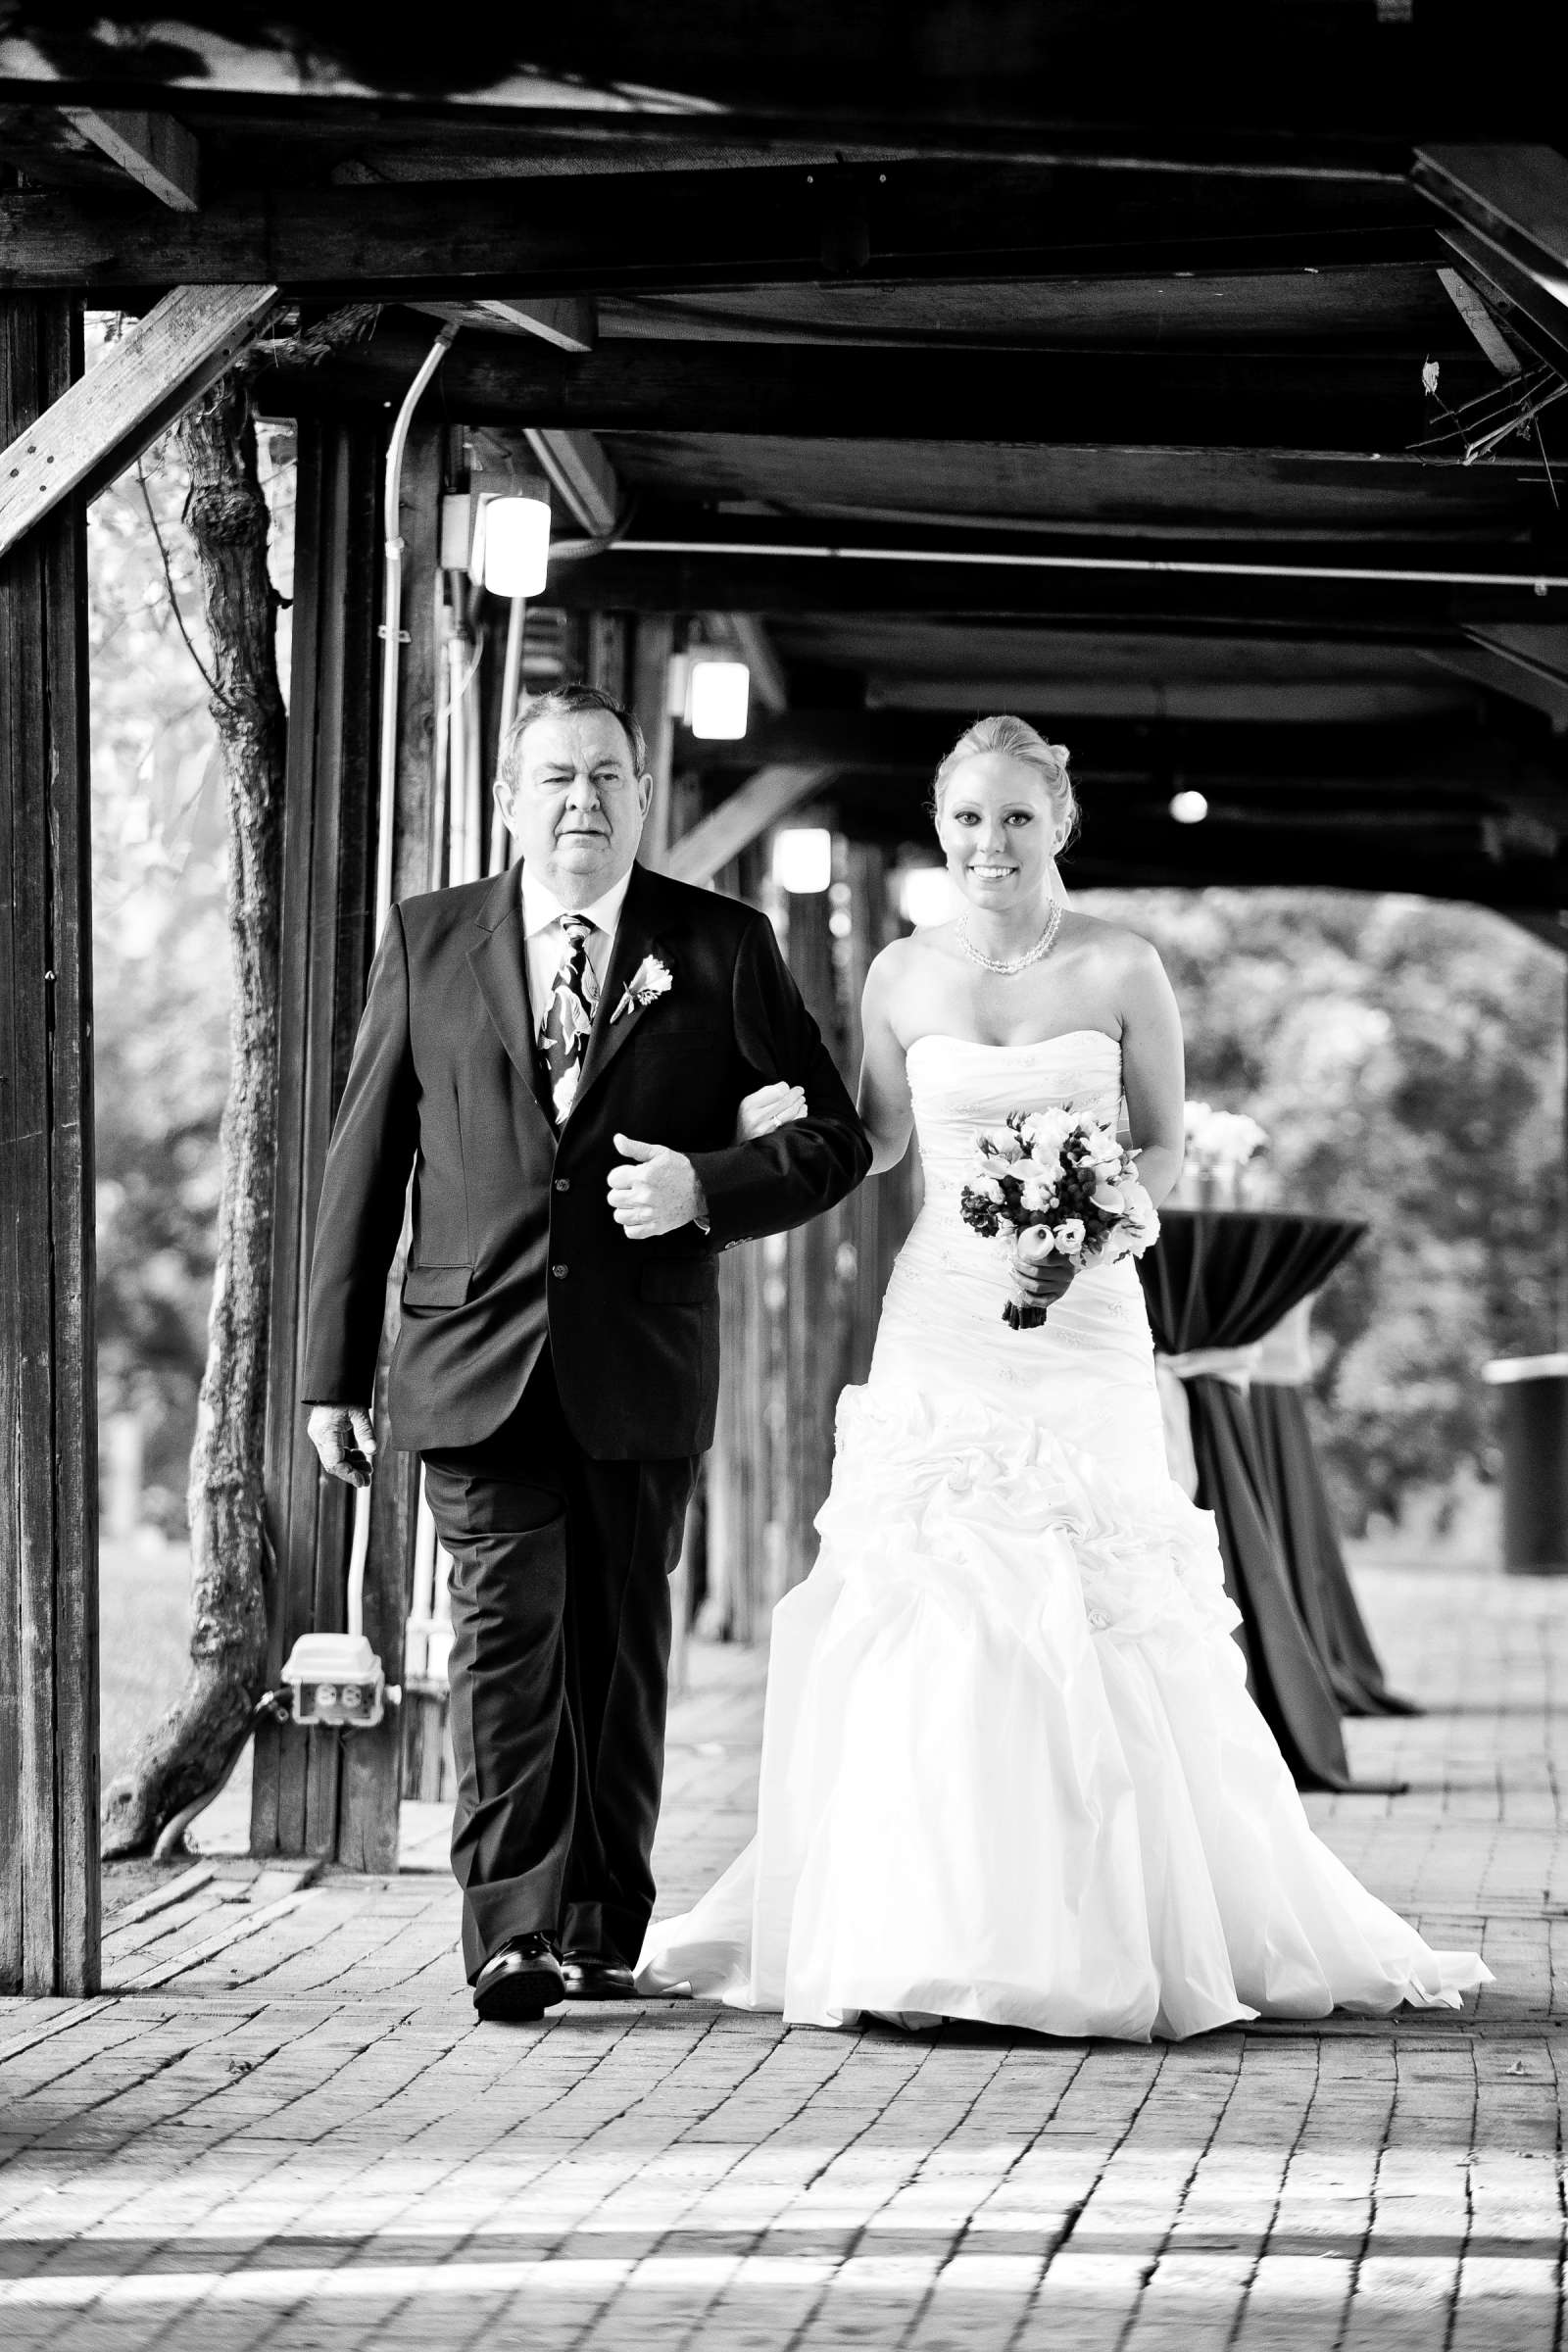 Orfila Vineyards Wedding, Mindy and Bryan Wedding Photo #23 by True Photography